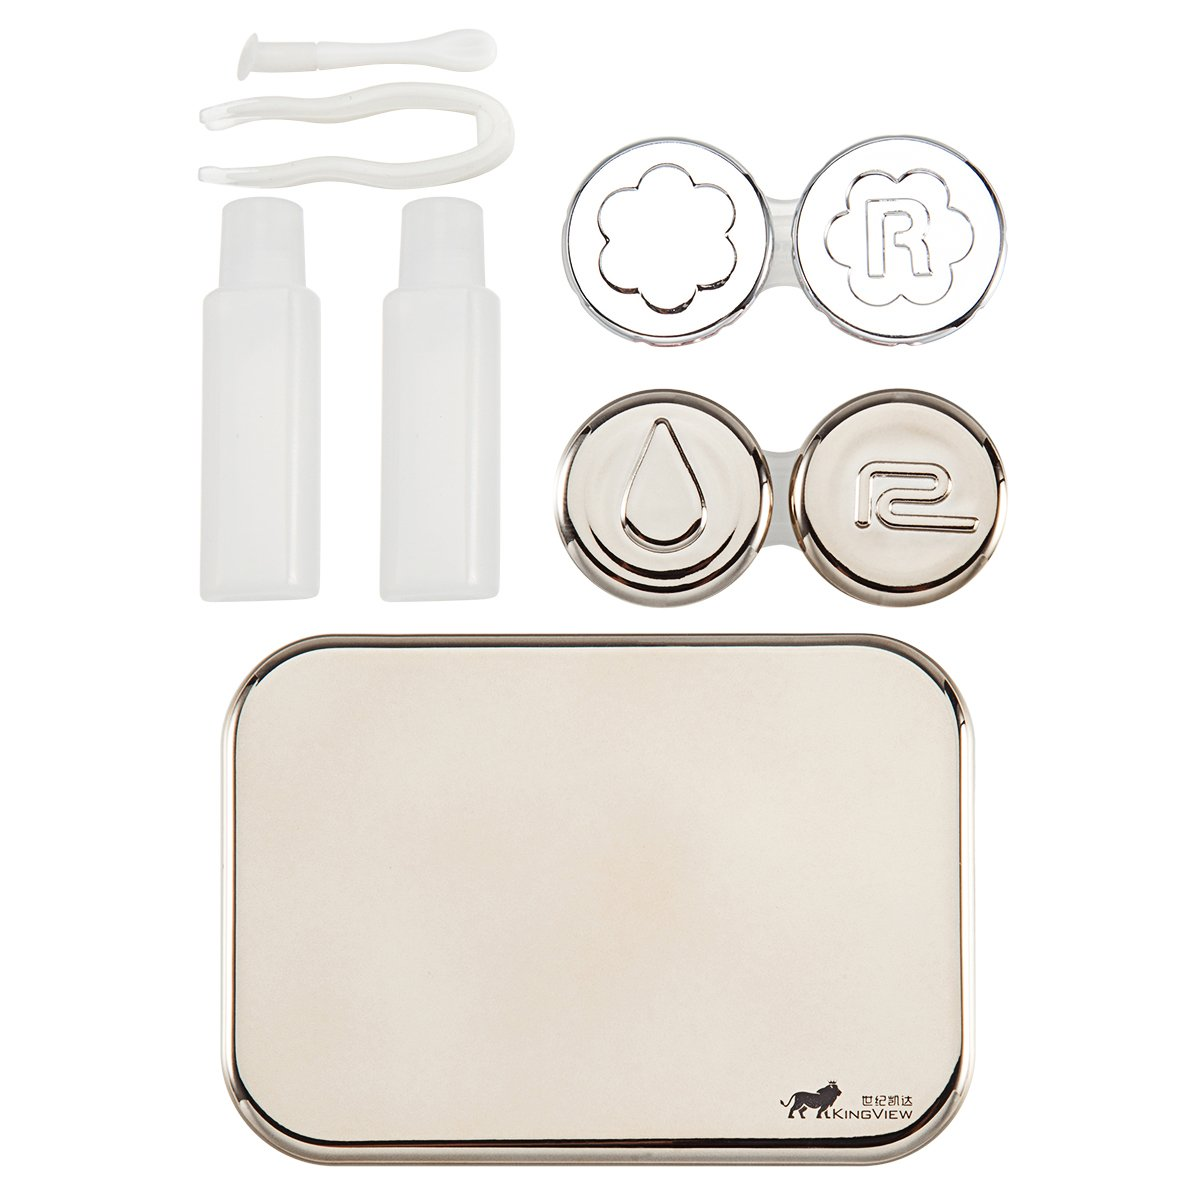 Bissport Cute Contact Lens Case Travel Kit Holder With Mirror (Gold) by Bissport (Image #1)